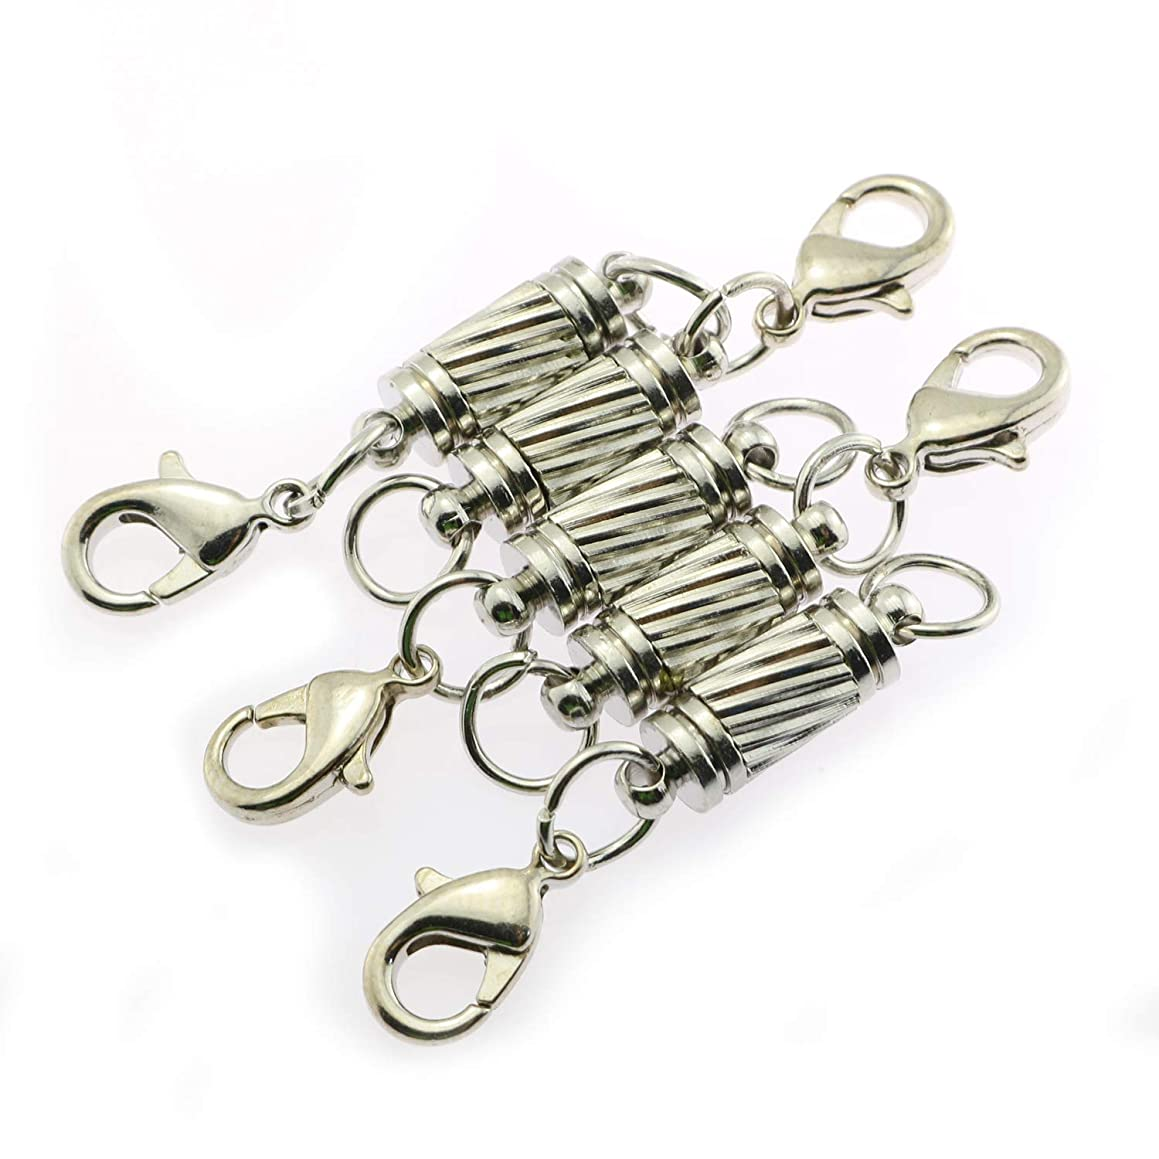 Tegg 5PCS Magnetic Jewelry Clasps with Lobster Claw Clasps for Jewelry Necklace Bracelet DIY Making Silvery